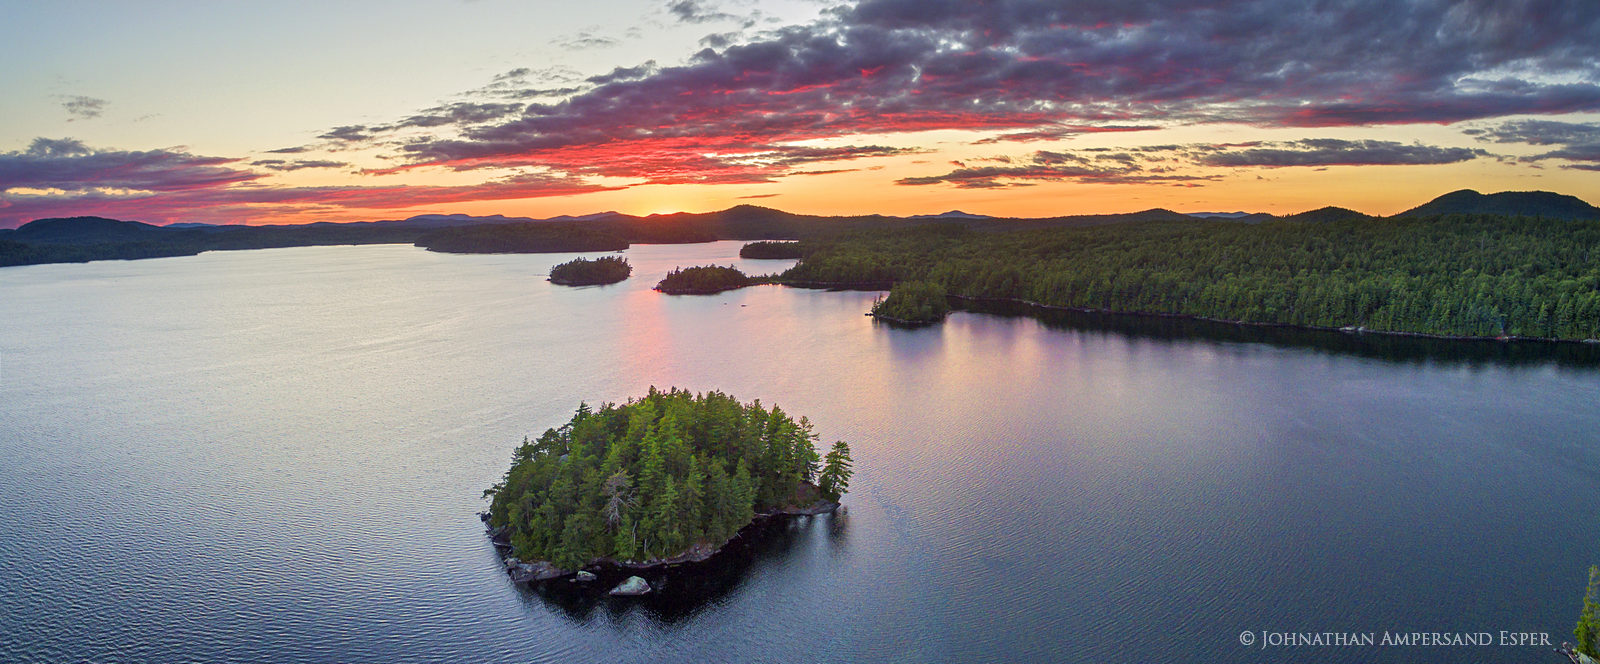 Middle Saranac Lake,drone,aerial,island,summer,sunset,summer sunset,Saranac Lakes,Adirondack Park,lake,waters,Saranac Lake, photo